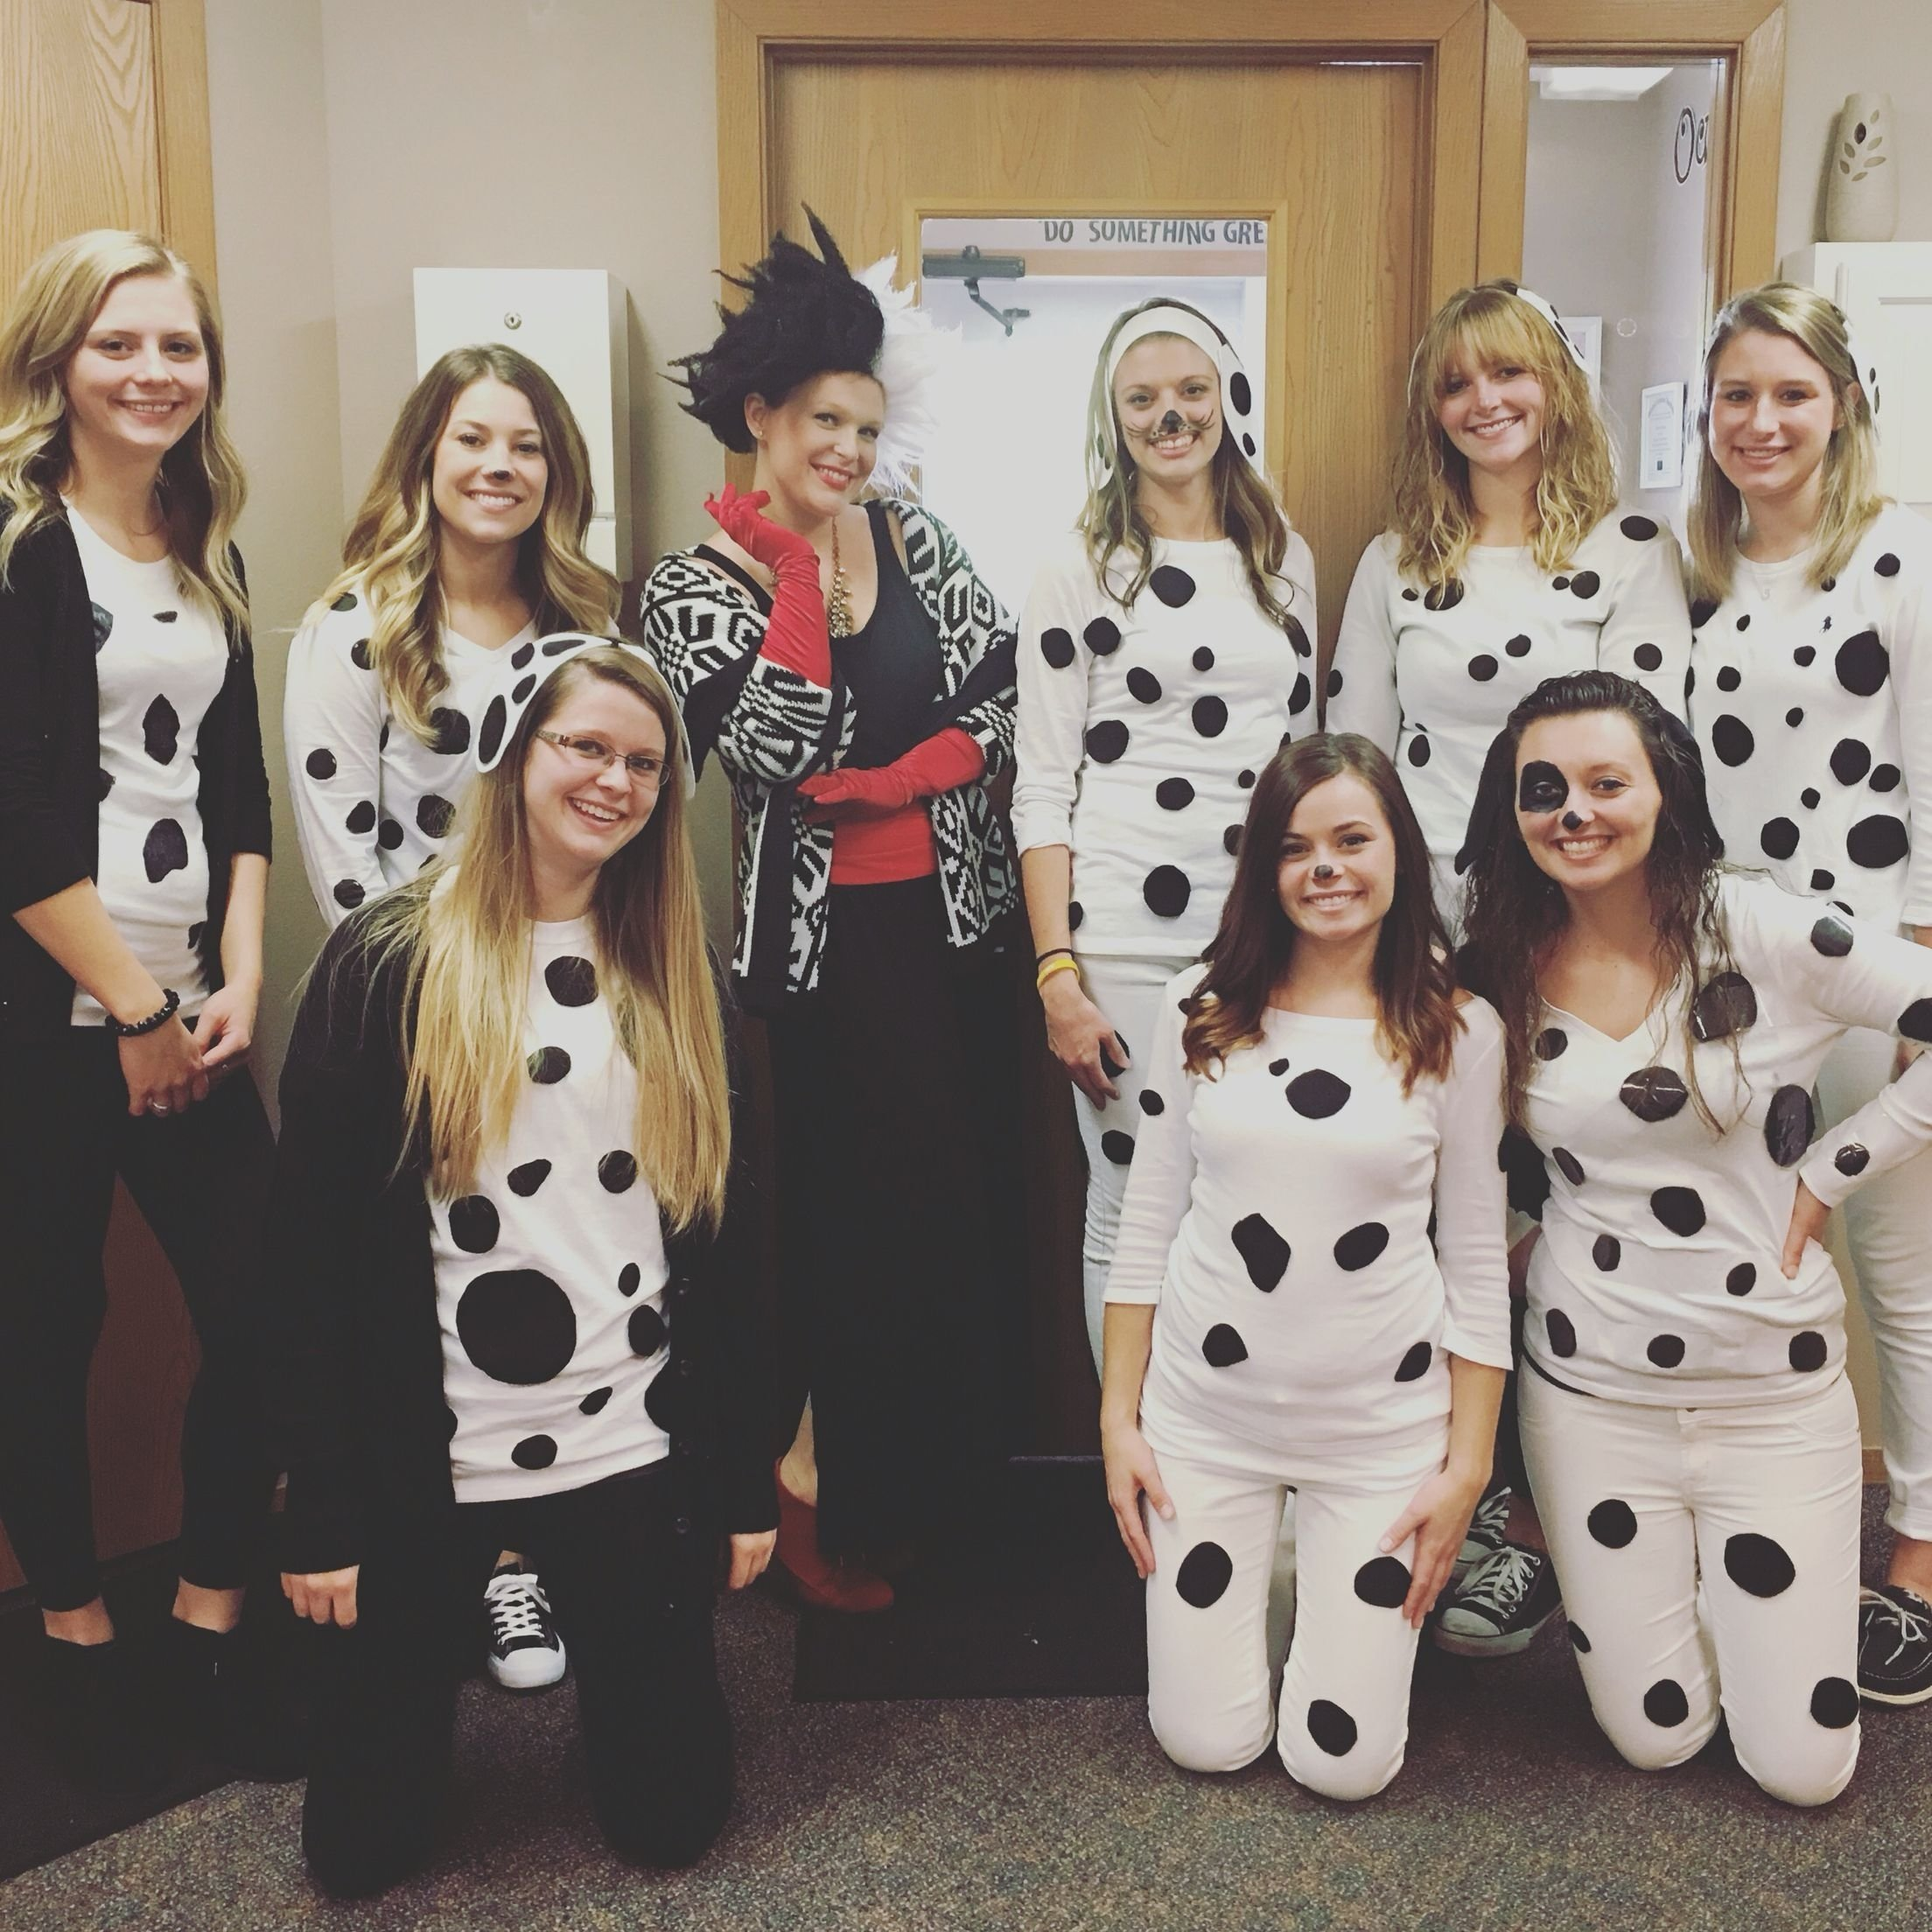 10 Best Group Halloween Costume Ideas For Work 101 dalmation group costume holidays events pinterest  sc 1 st  Unique Ideas 2018 & 10 Best Group Halloween Costume Ideas For Work